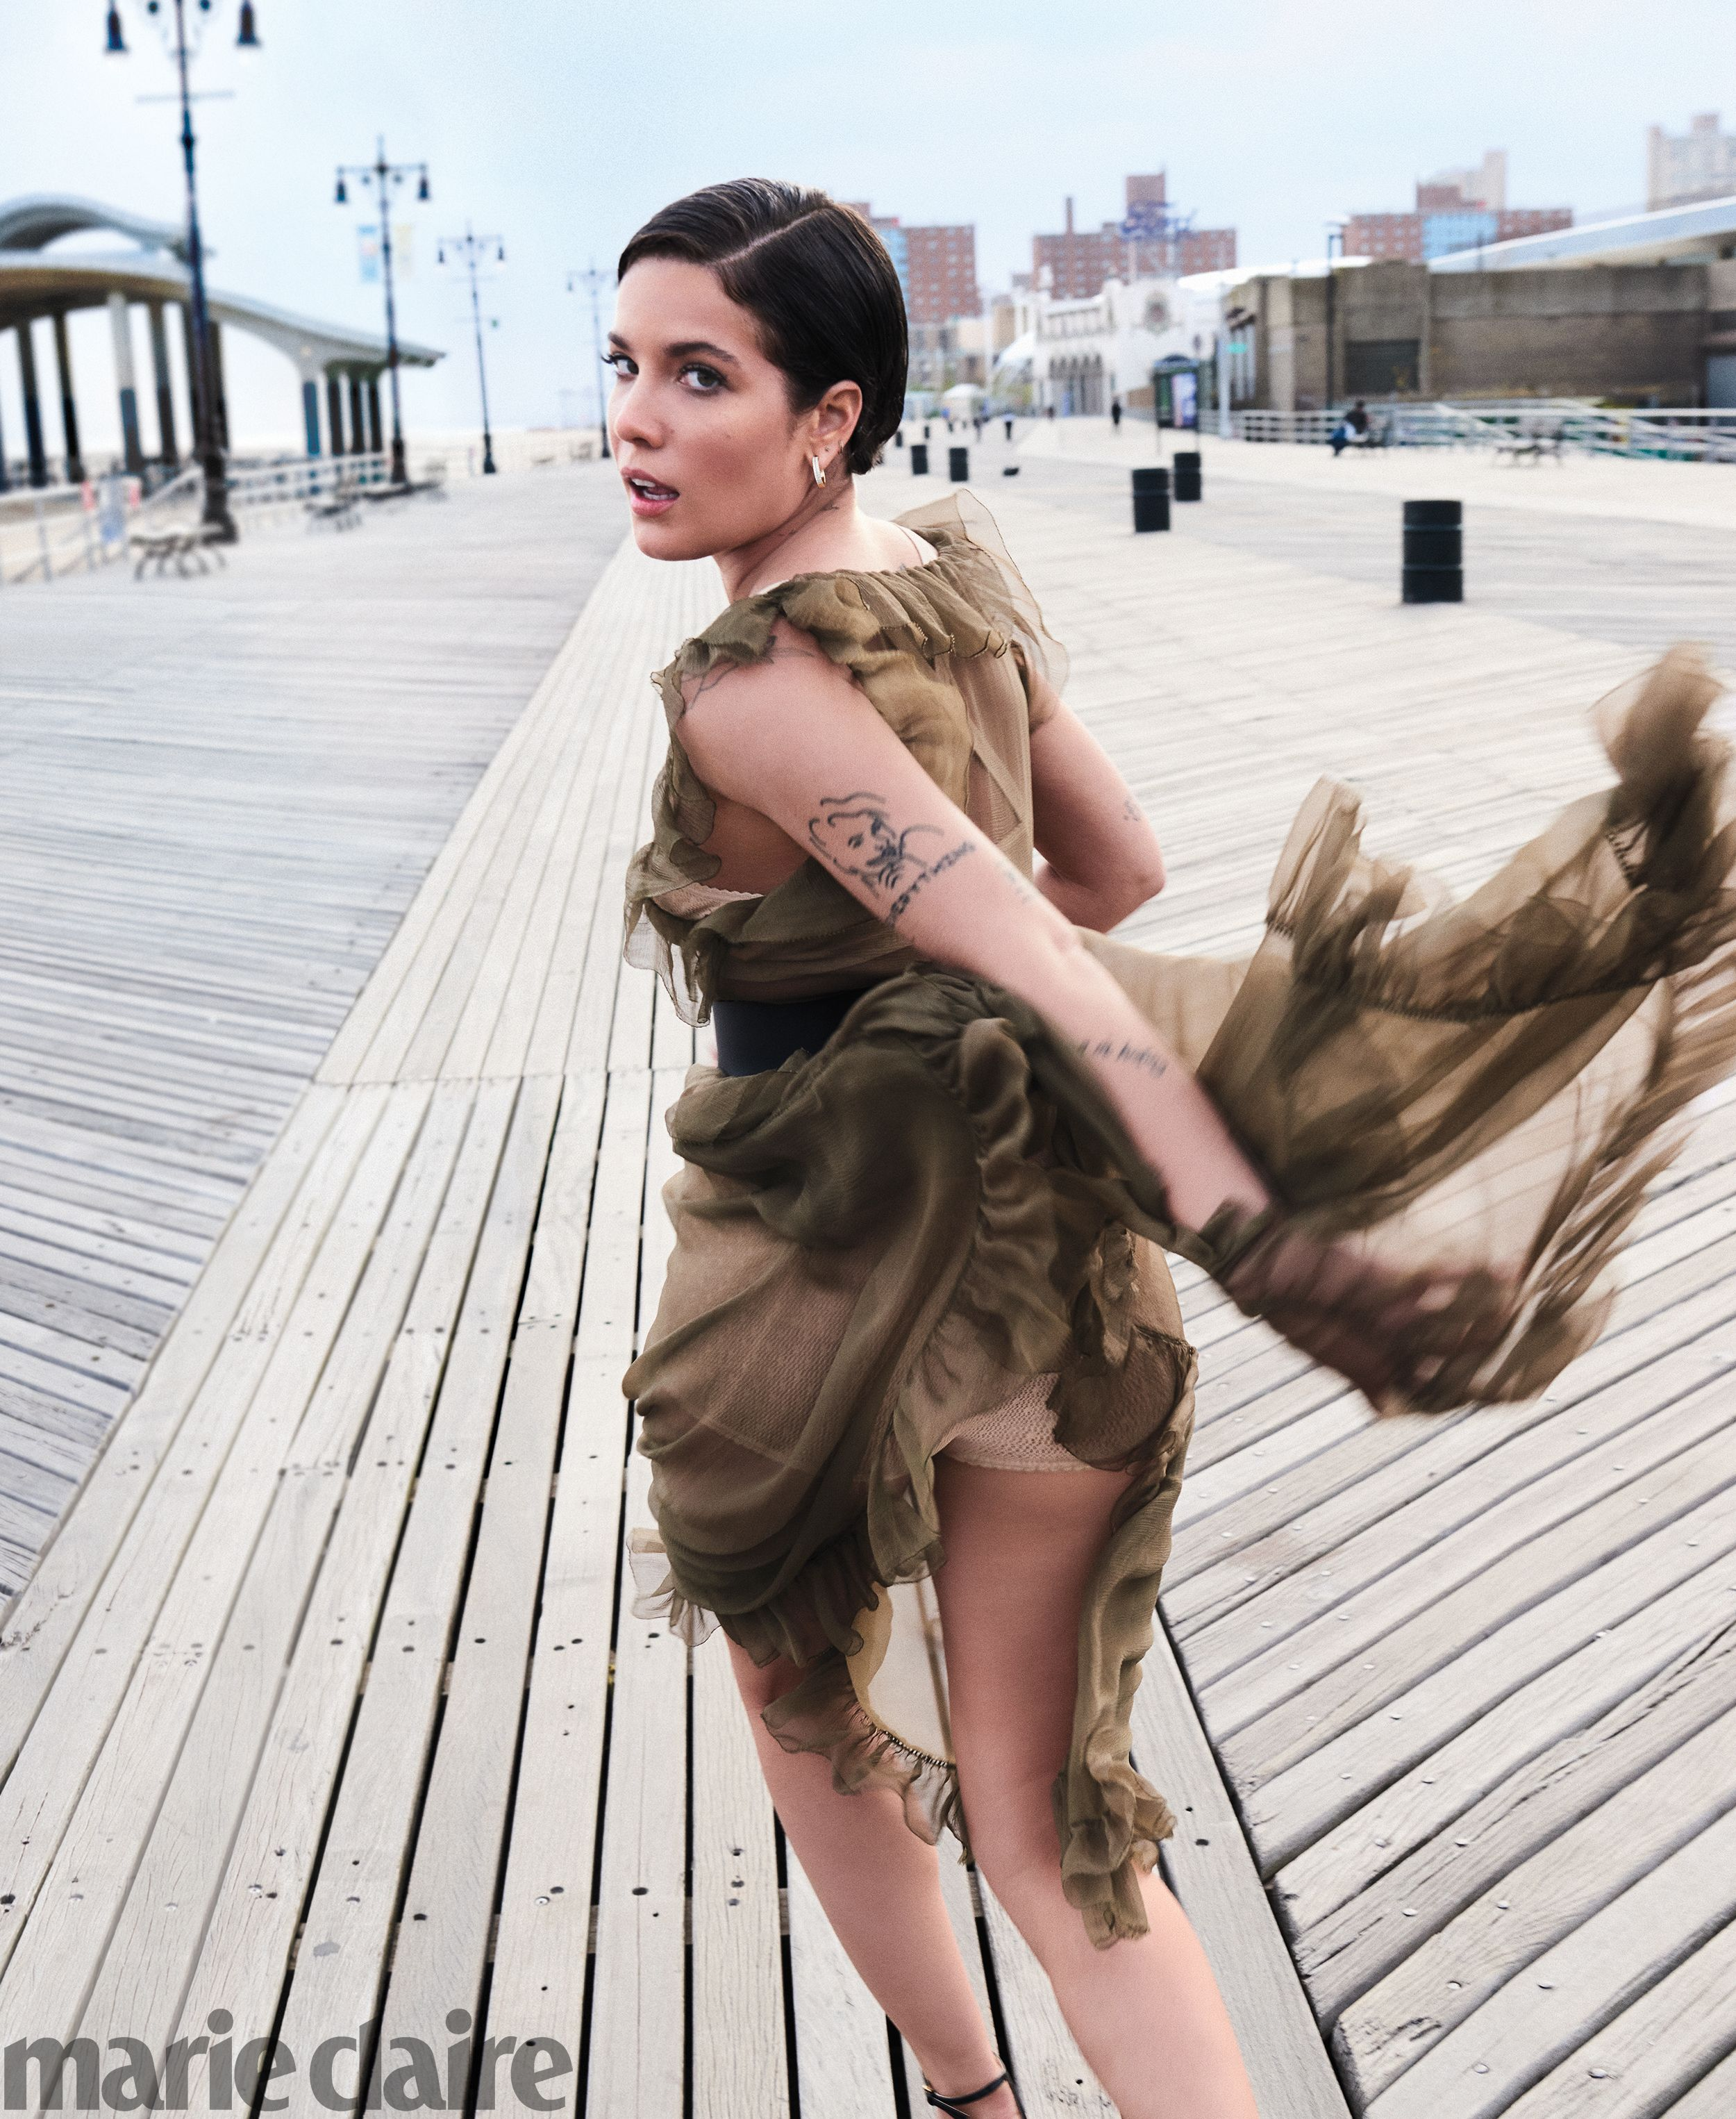 Halsey on Her Relationship with Ex G-Eazy, How She Rose to Stardom